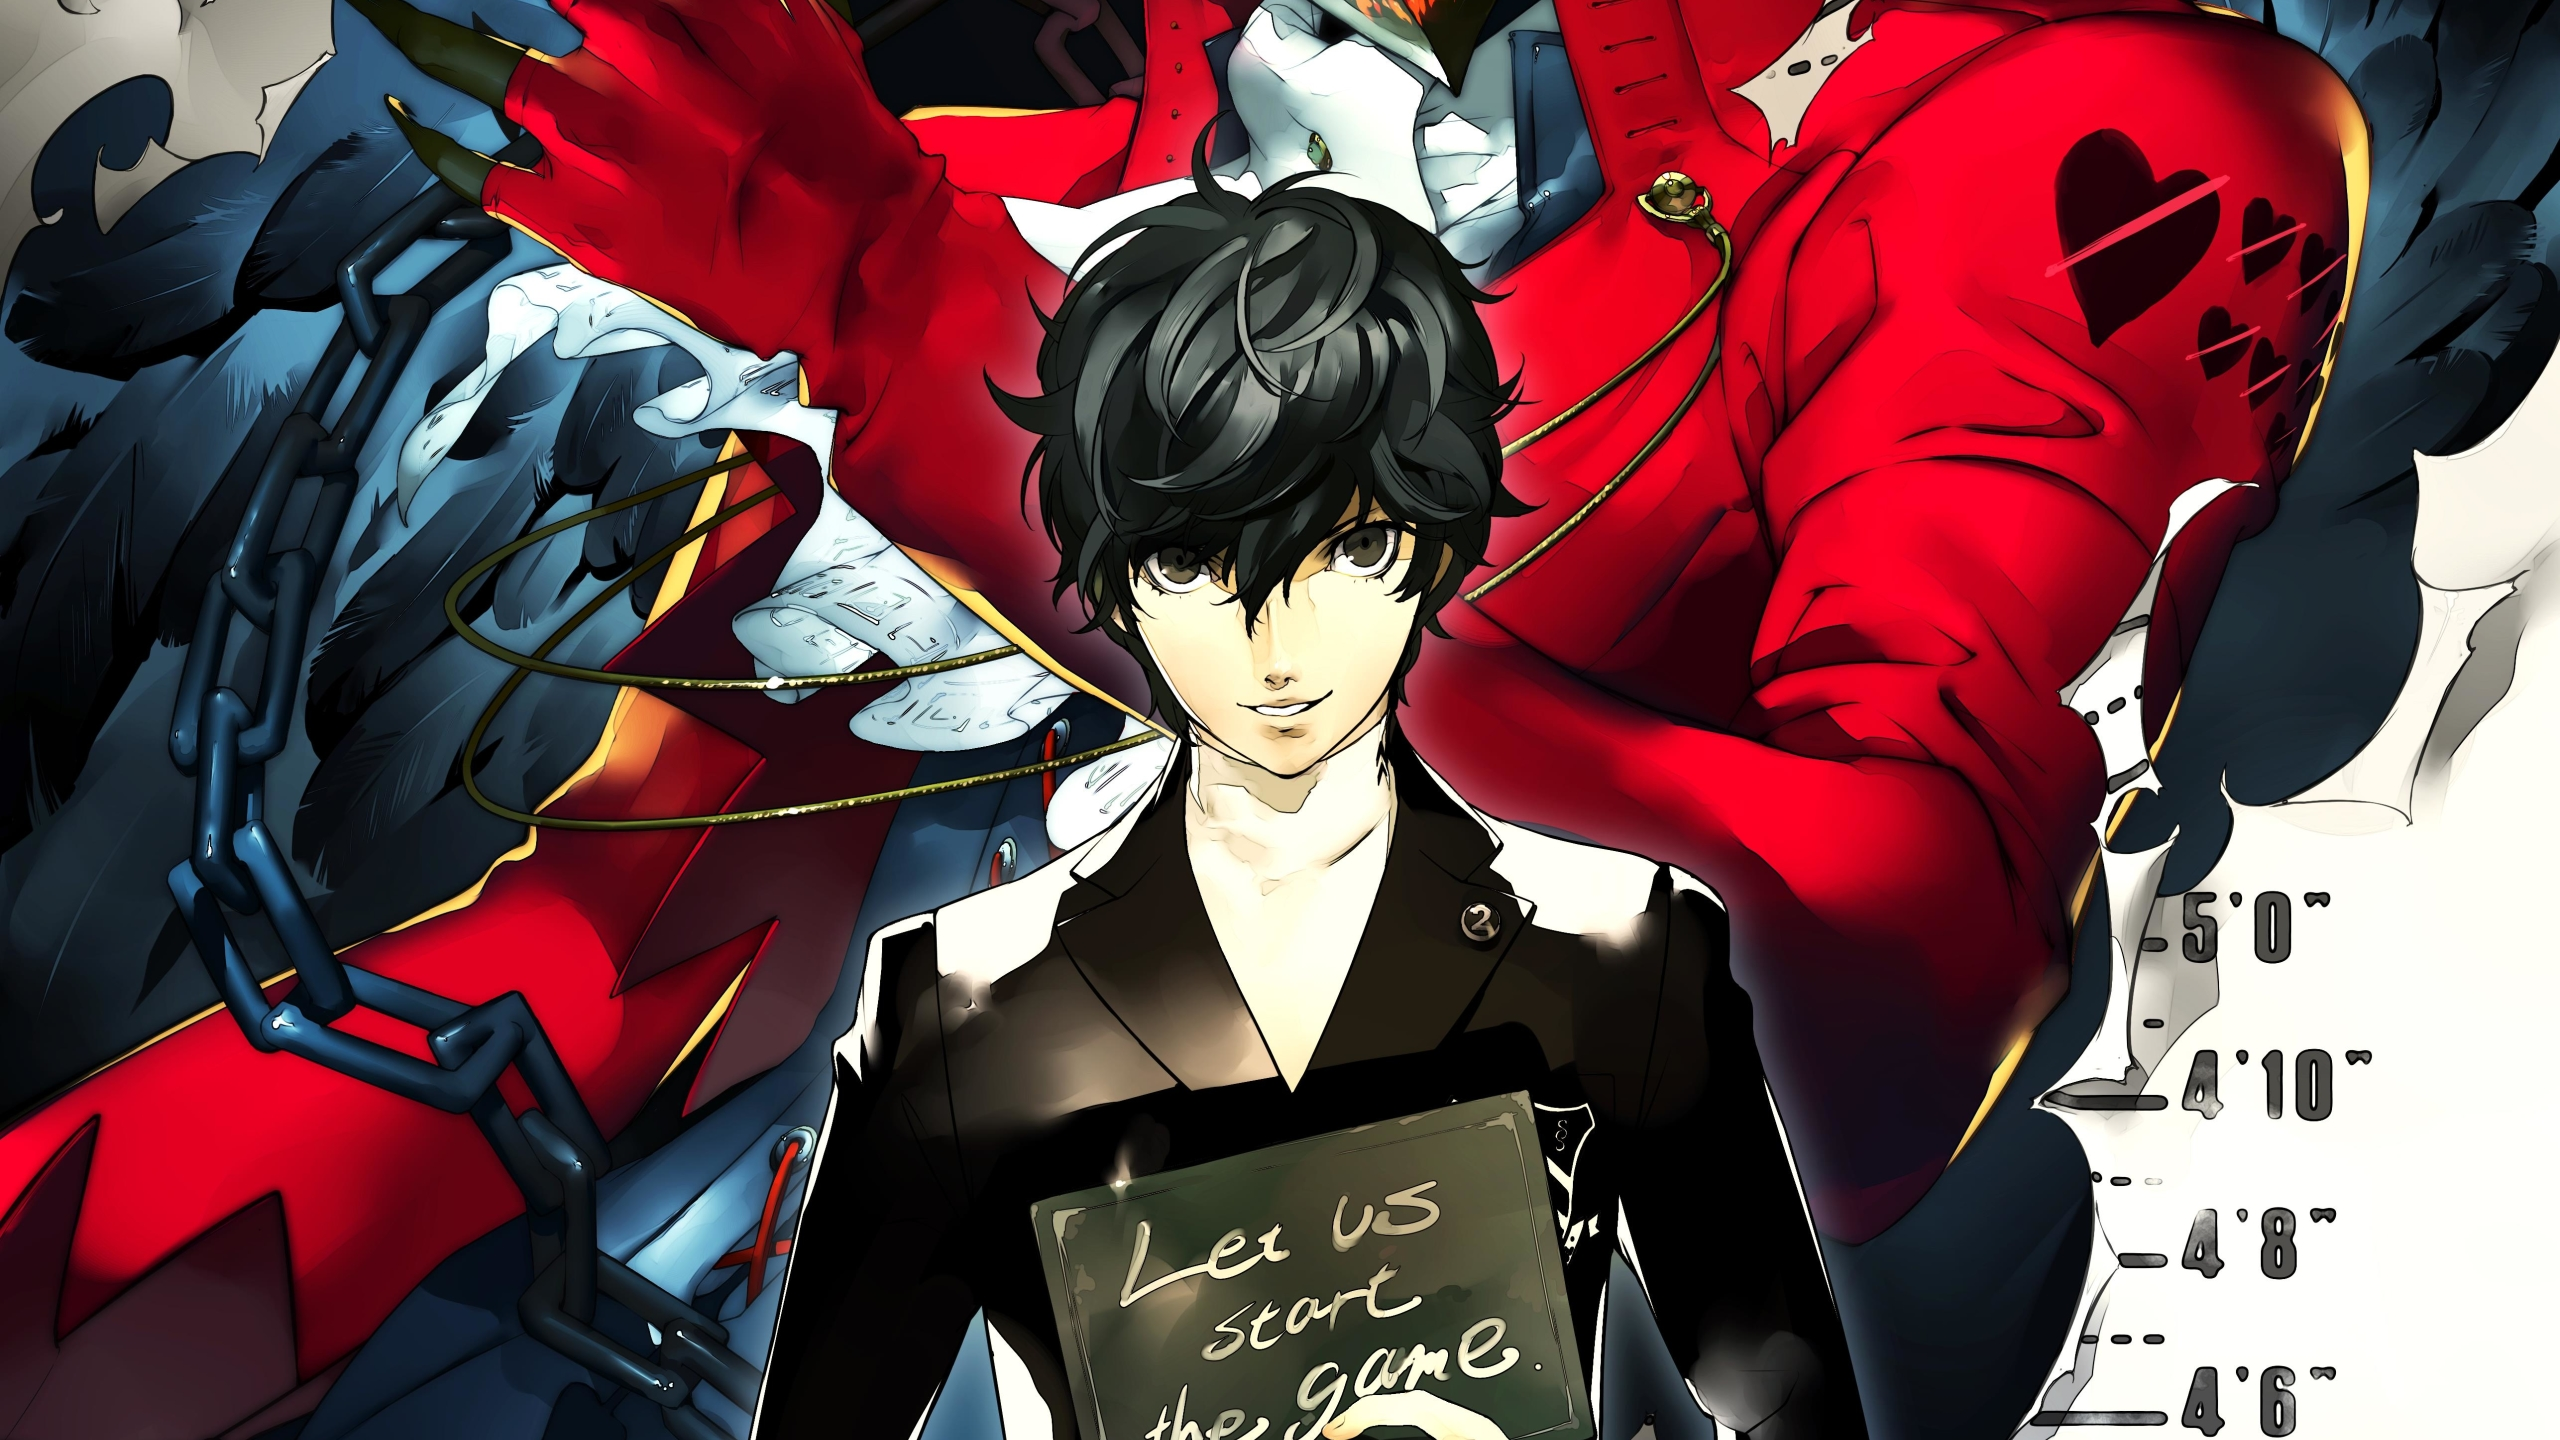 2560x1440 Persona 5 1440p Resolution Wallpaper Hd Games 4k Wallpapers Images Photos And Background